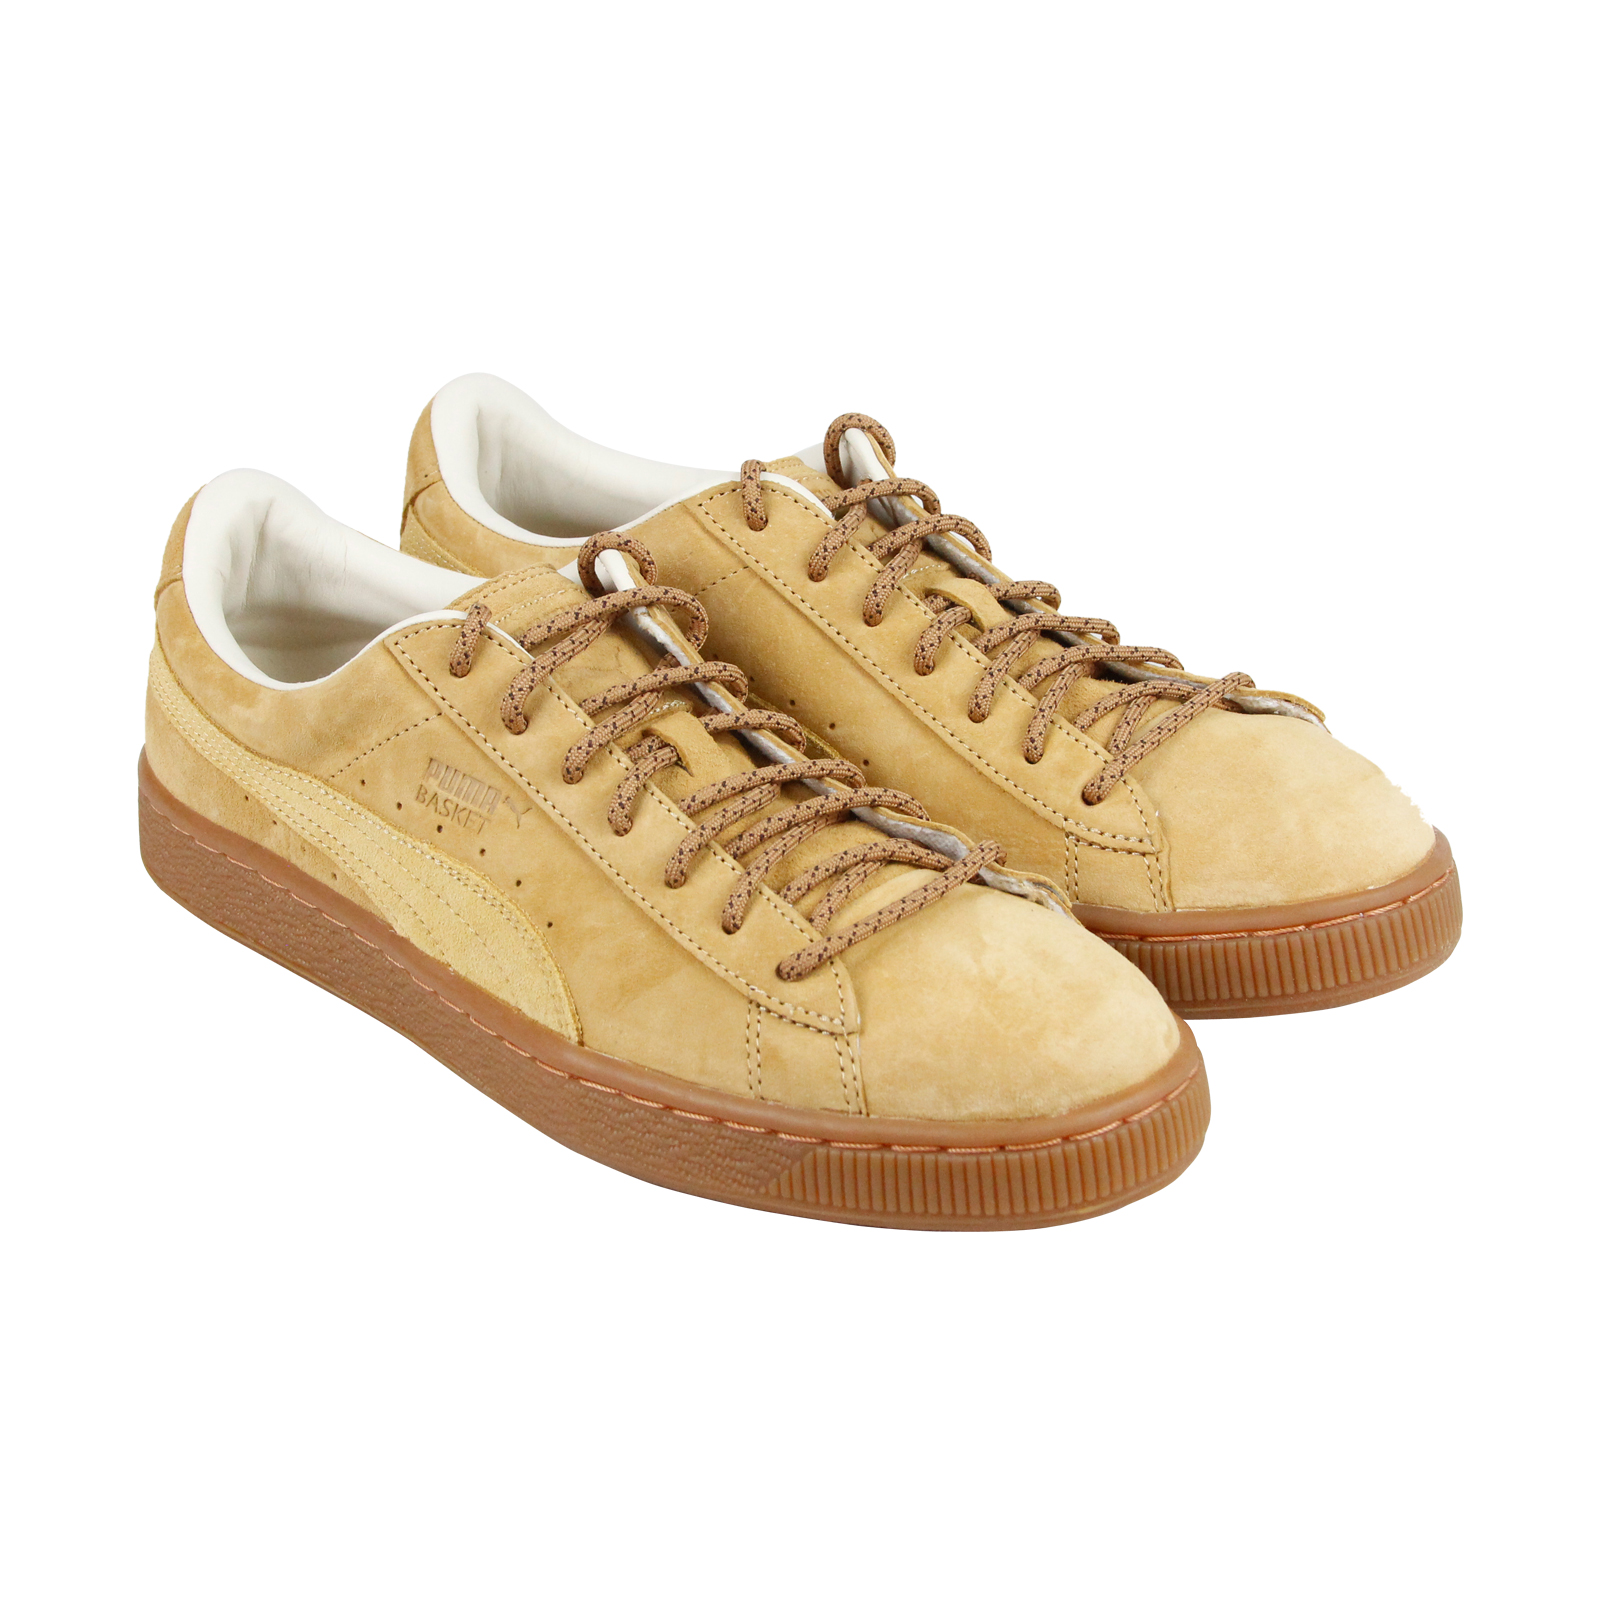 Puma Basket Classic Winterized Mens Tan Leather Lace Up Sneakers Shoes